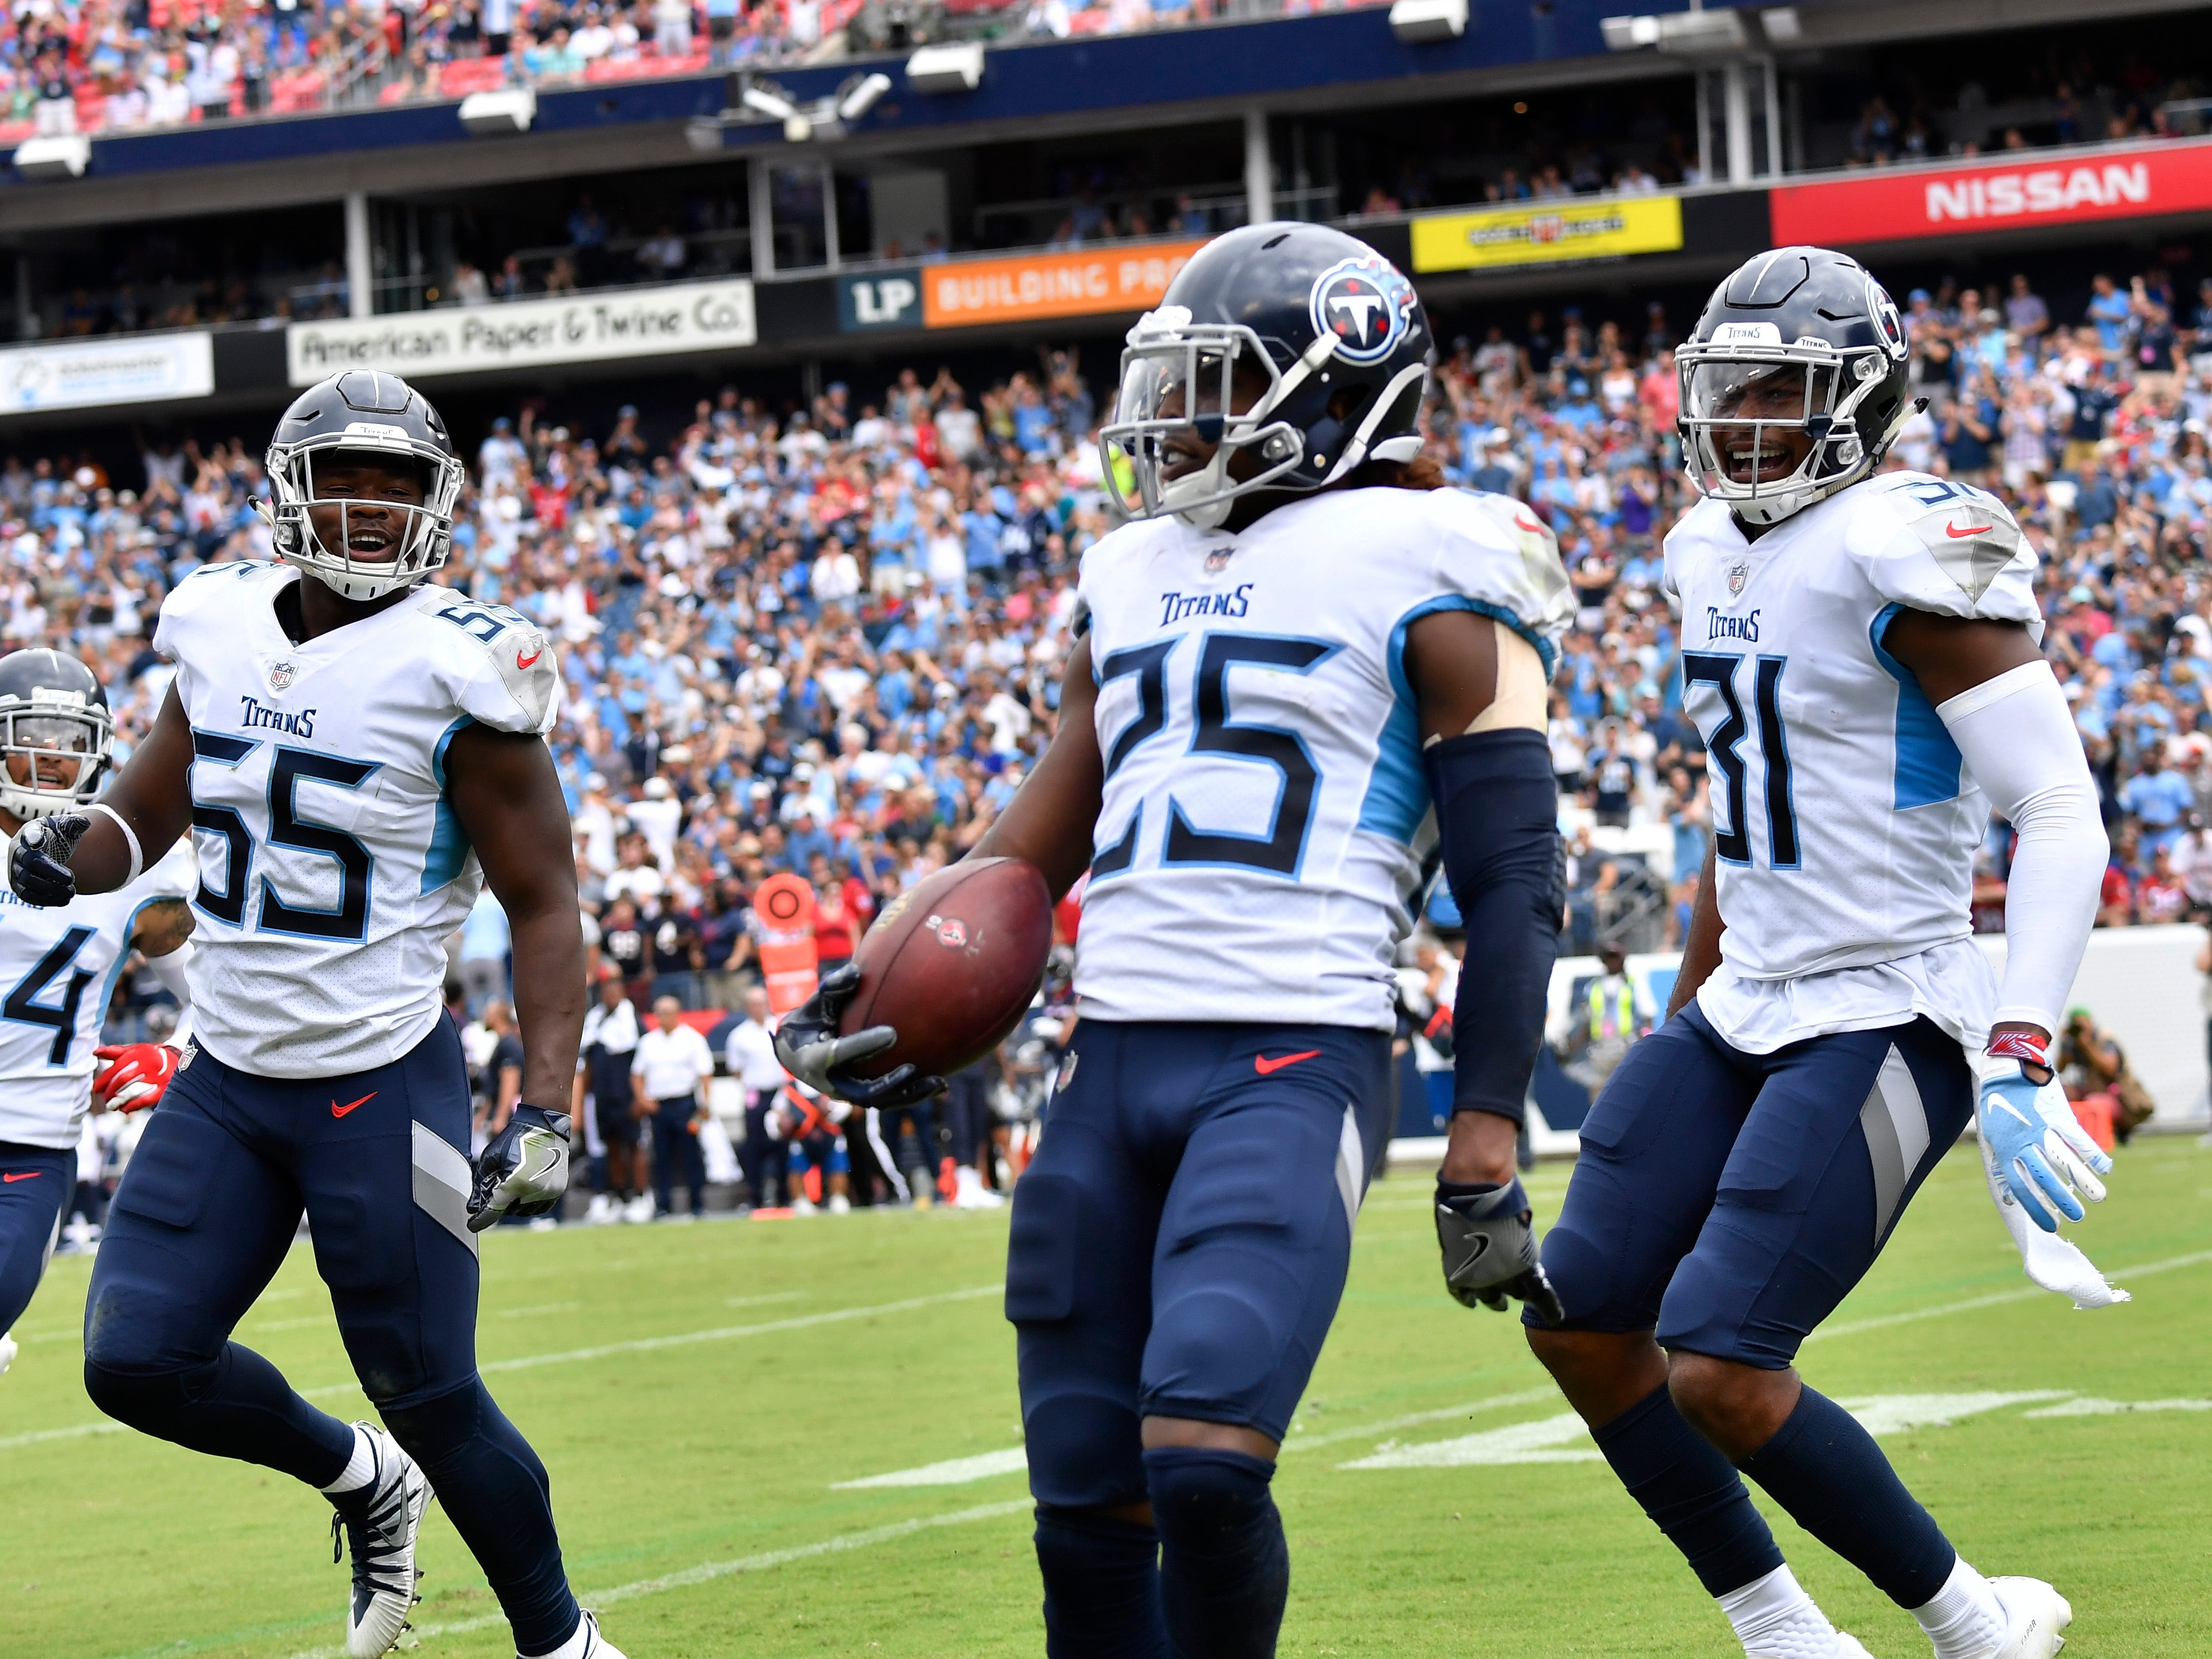 Titans cornerback Adoree' Jackson (25) celebrates his interception in the end zone in the second quarter at Nissan Stadium Sunday, Sept. 16, 2018, in Nashville, Tenn.